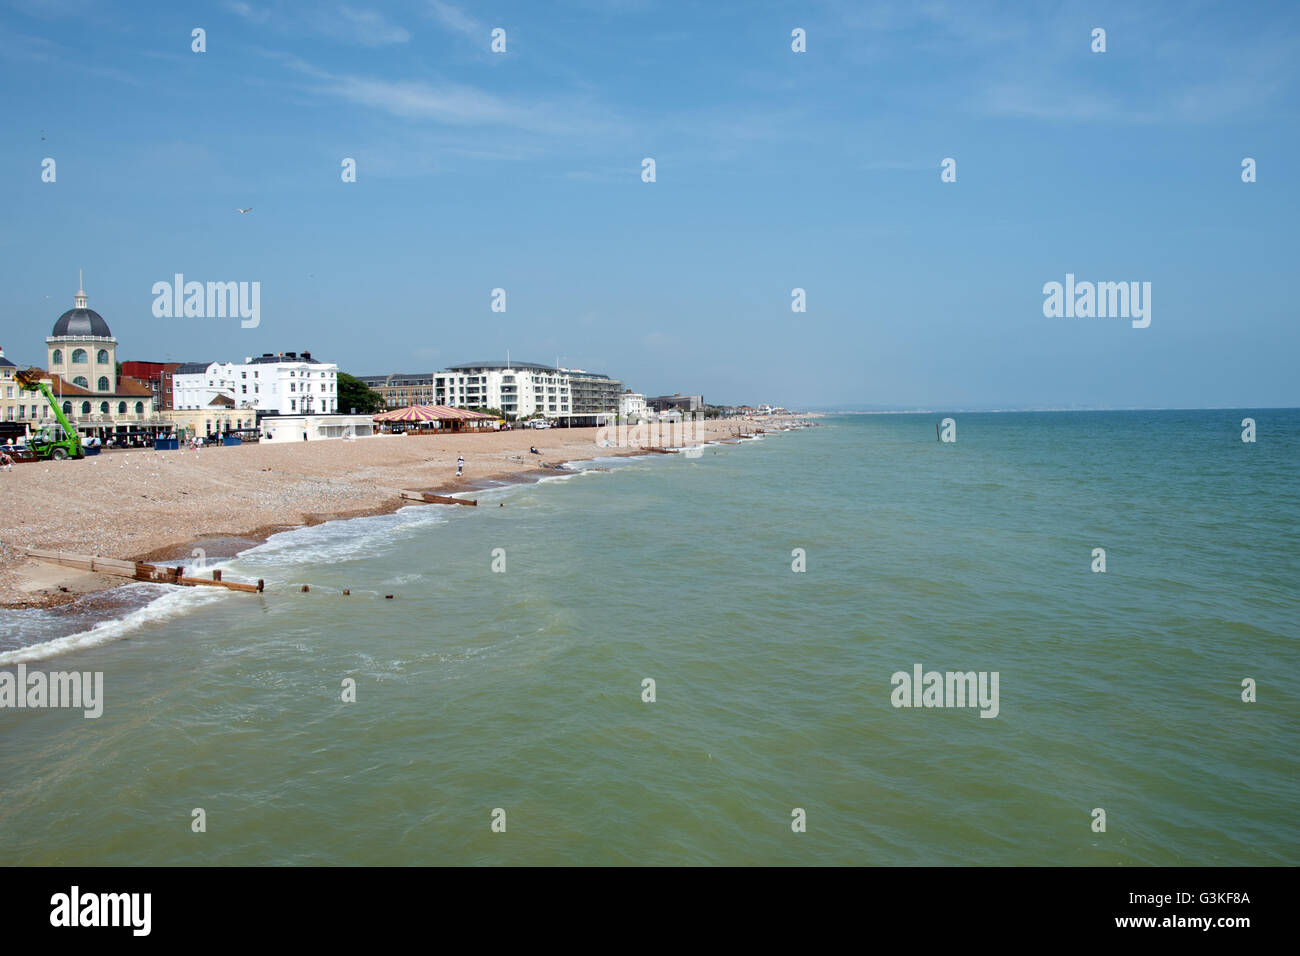 Views from Worthing pier - Stock Image